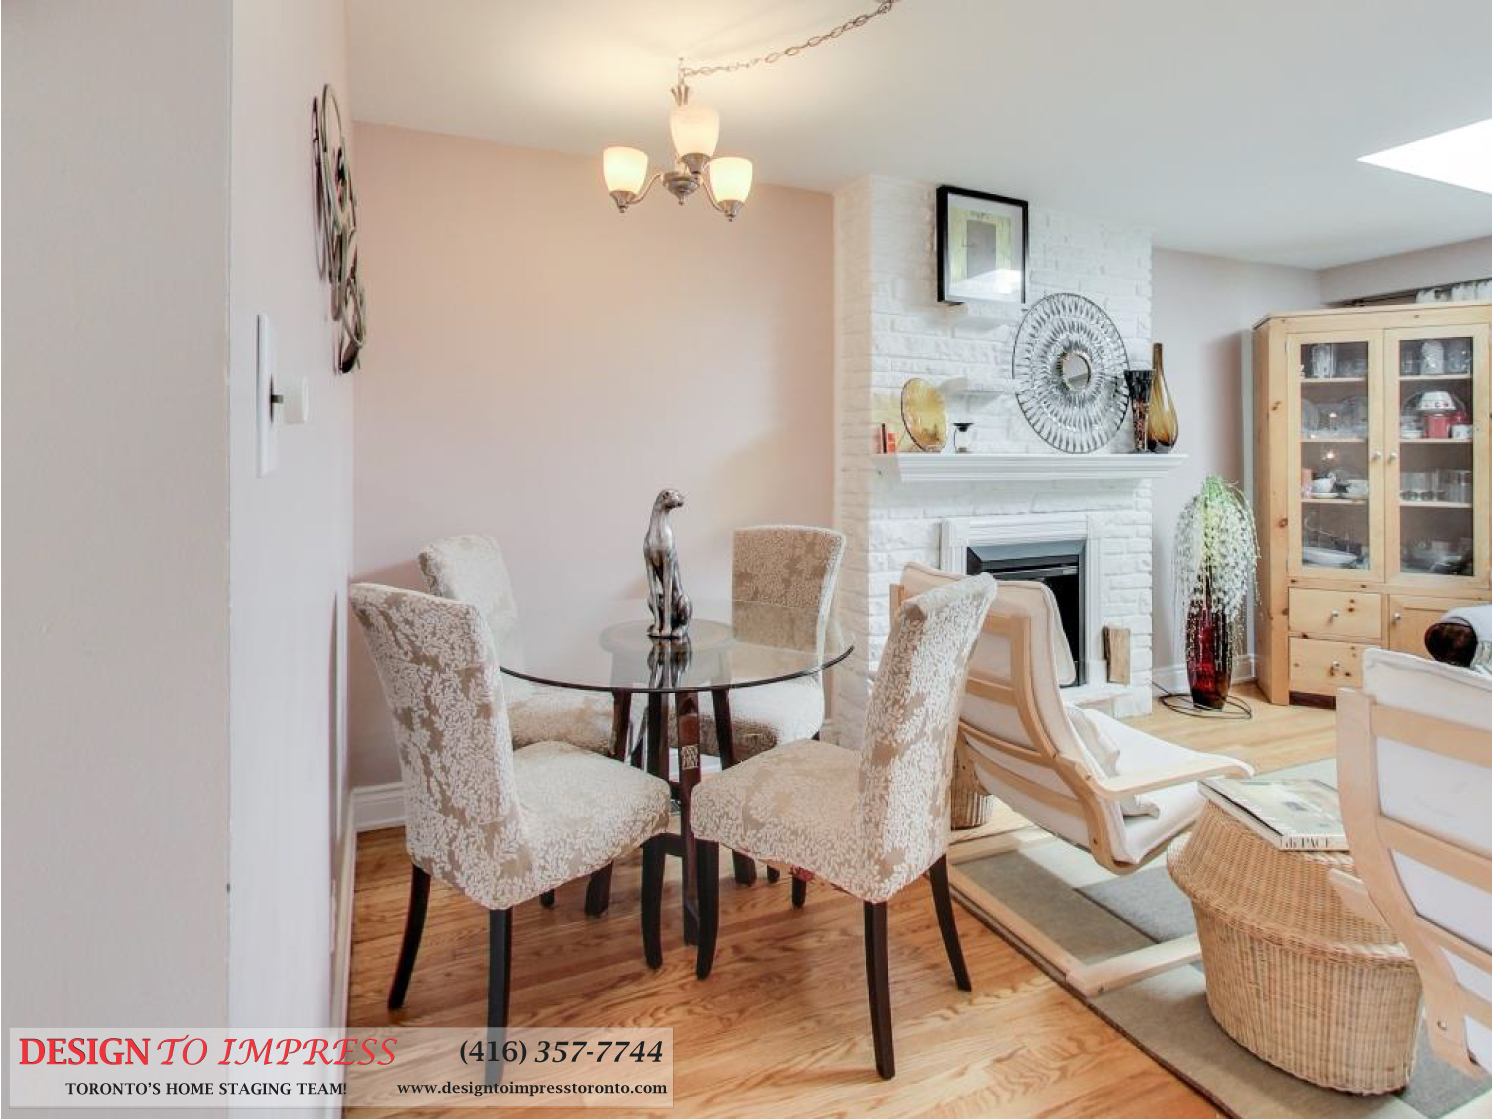 Dining Room, 41 Bournville, Scarborough Home Staging